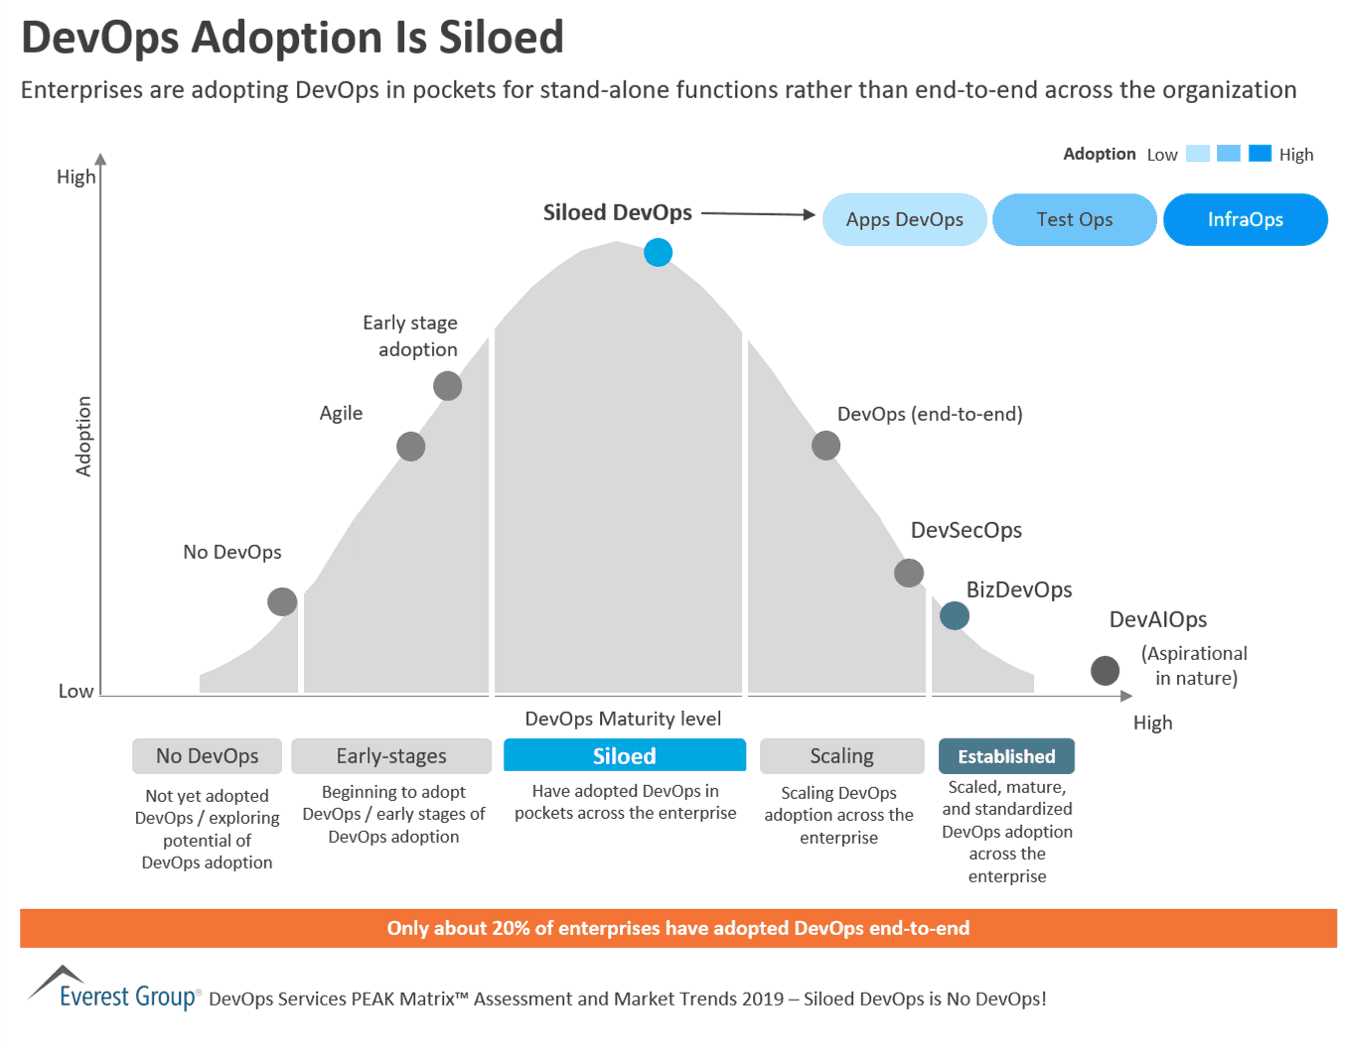 DevOps Adoption Is Siloed